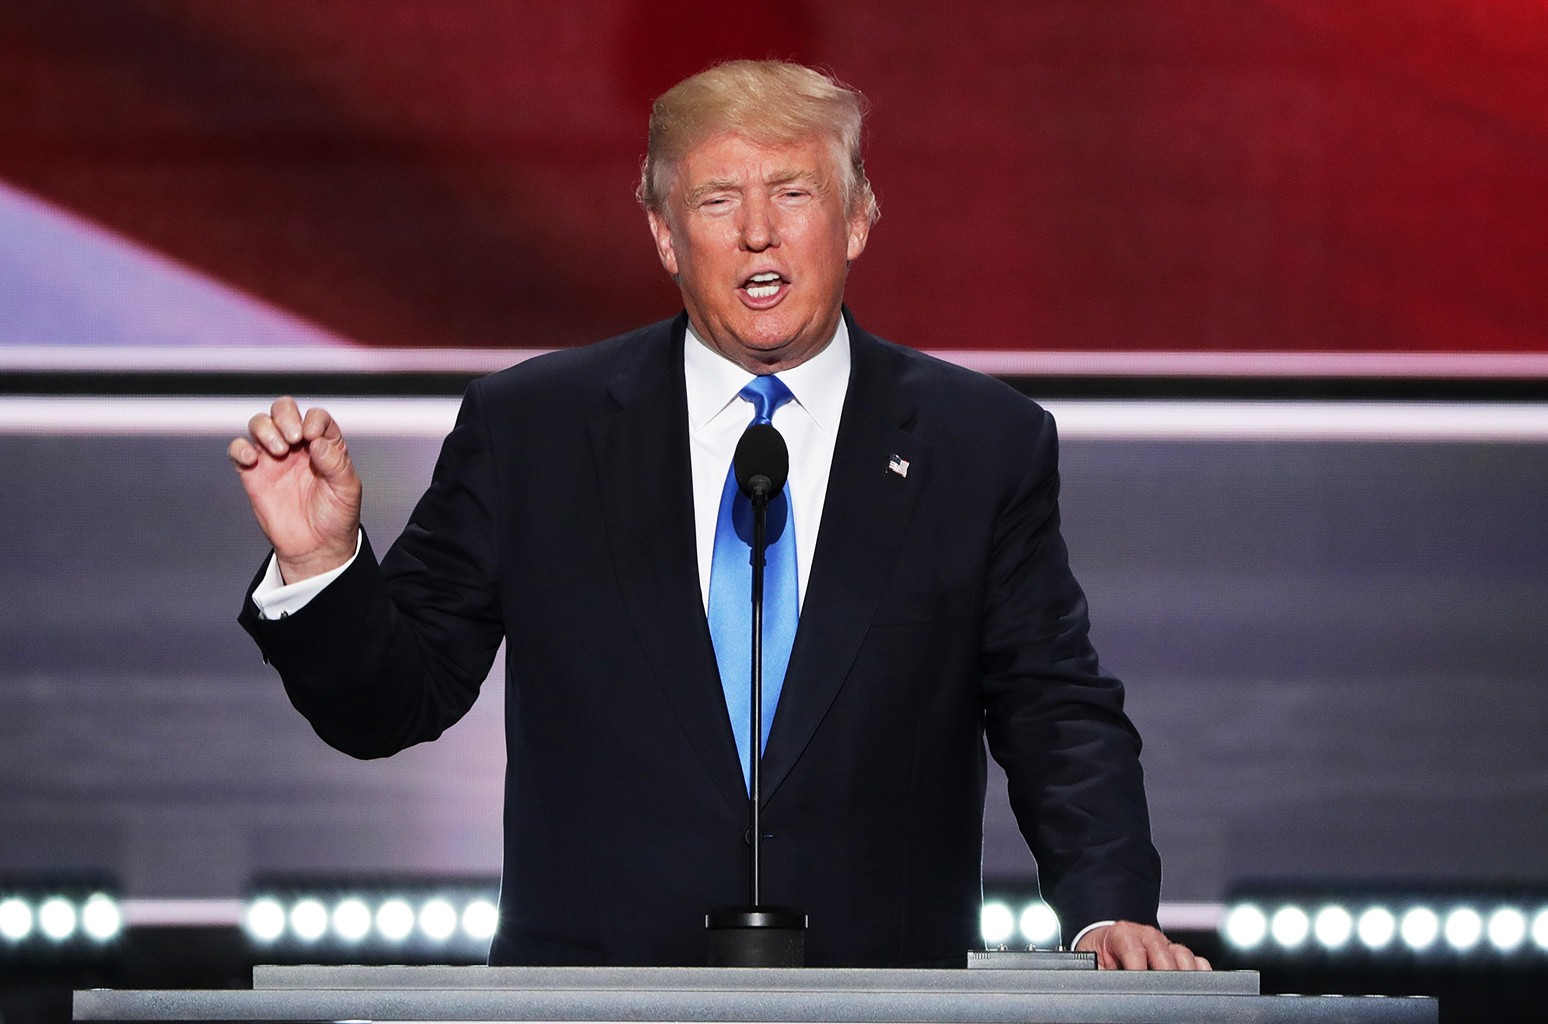 Donald Trump at the 2016 Republican National Convention